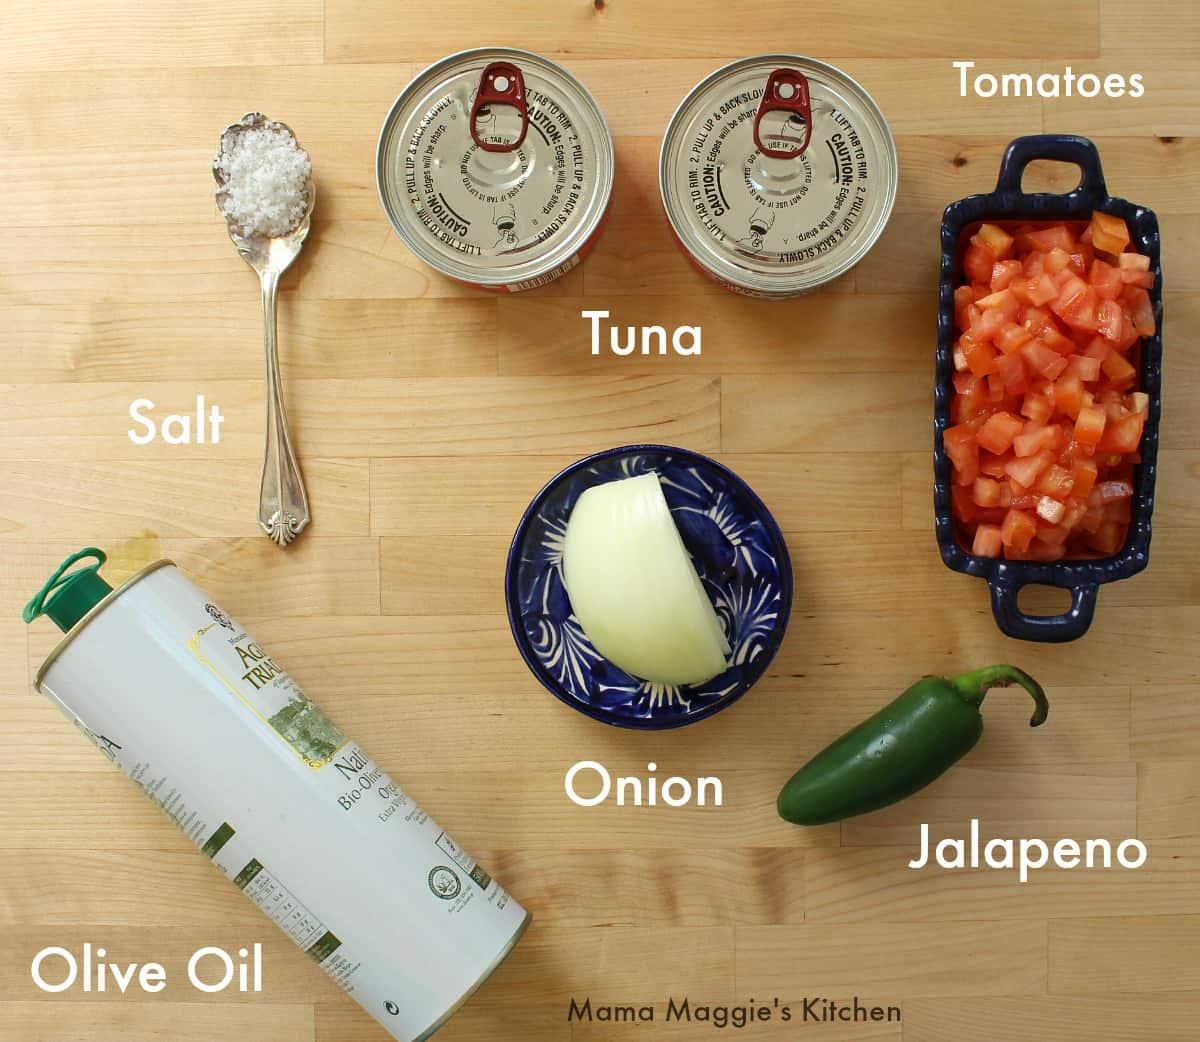 Ingredients for Mexican-Style Tuna on a wooden surface.